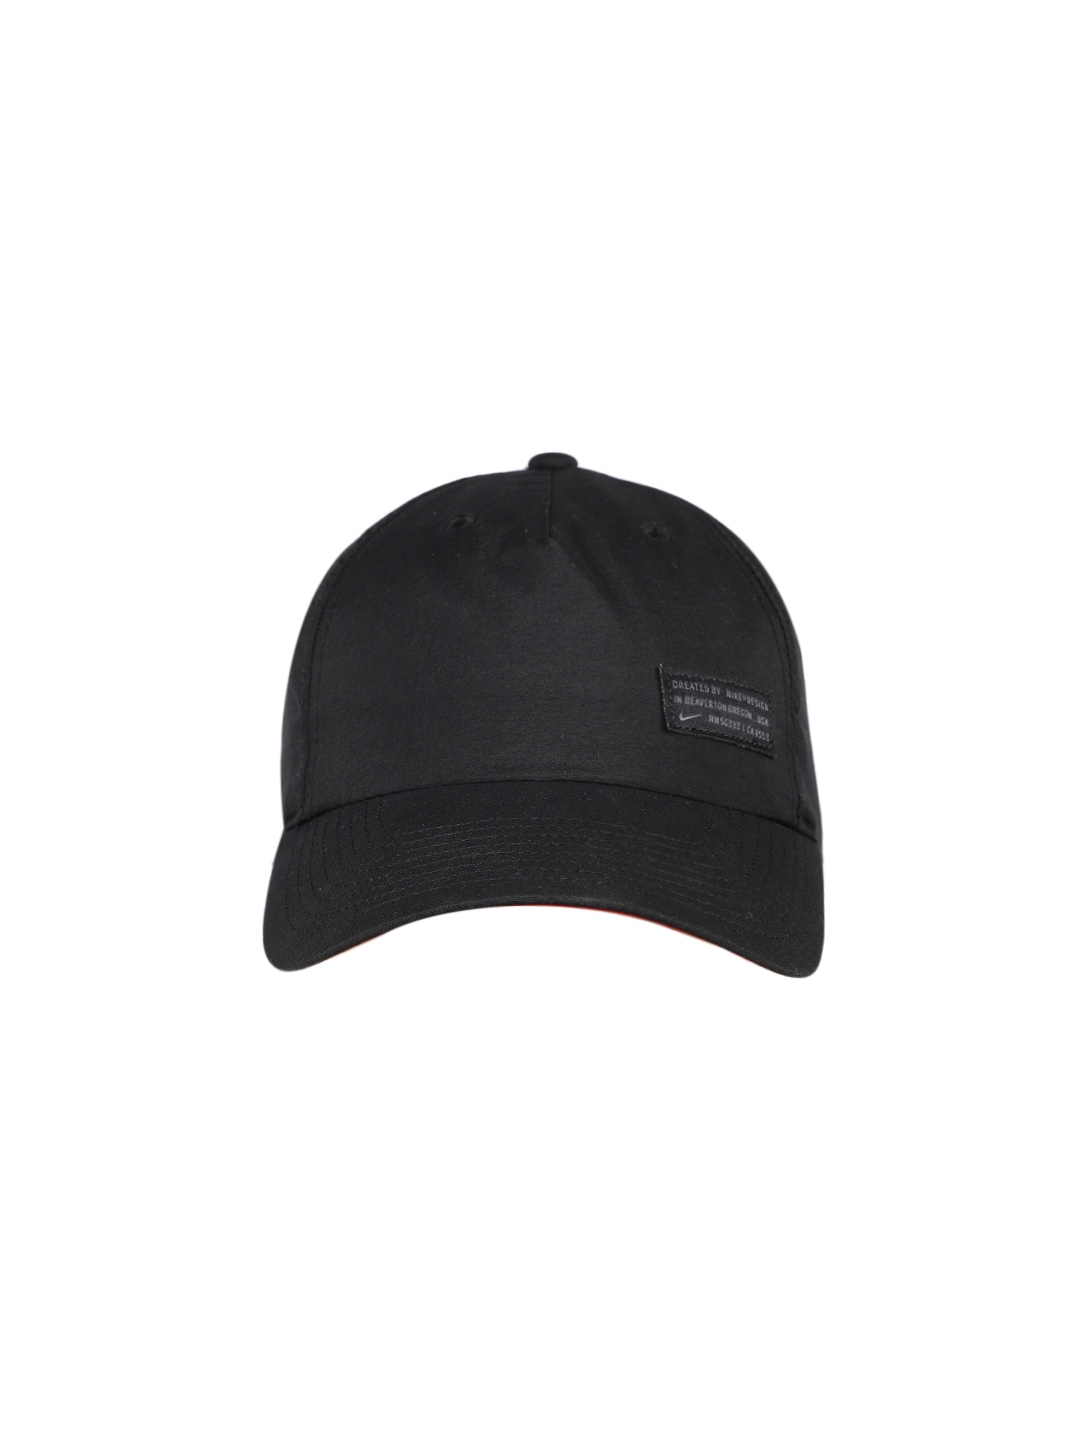 e94dc020ed962 Women s Caps - Buy Caps for Women Online in India